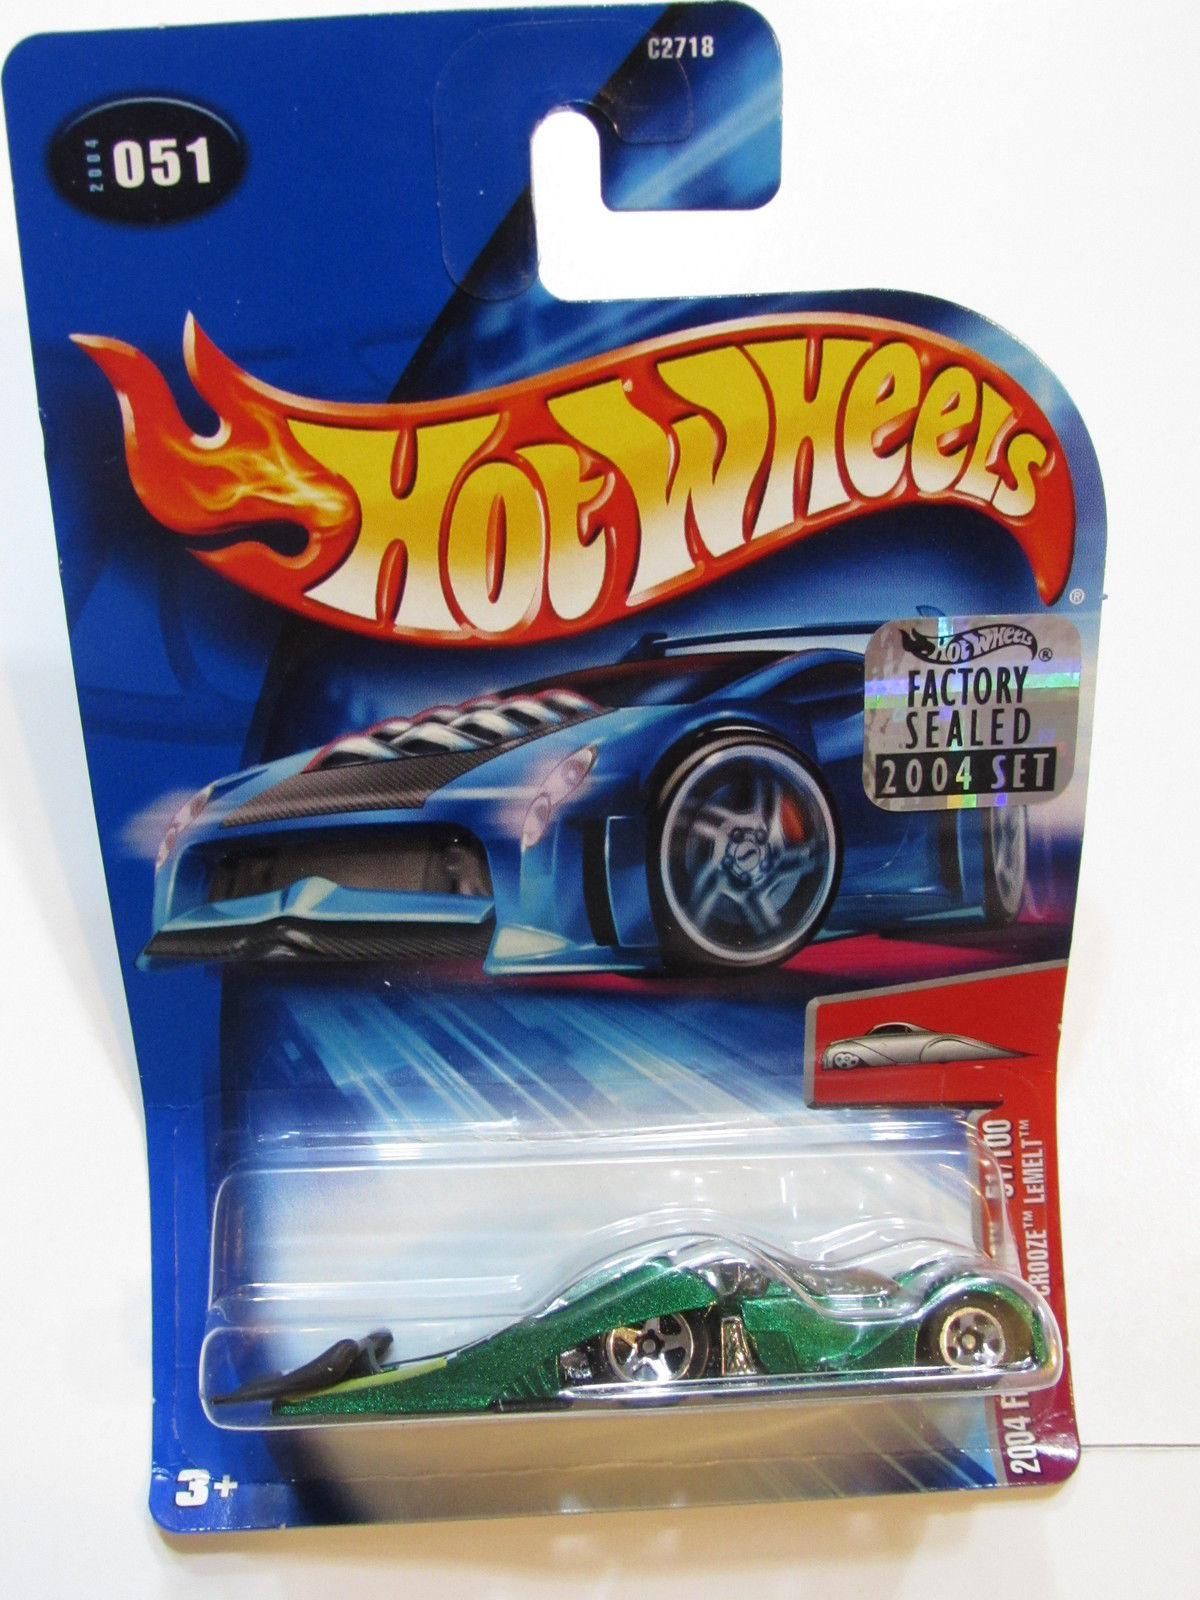 HOT WHEELS 2004 FIRST EDITIONS CROOZE LEMELT #051 FACTORY SEALED